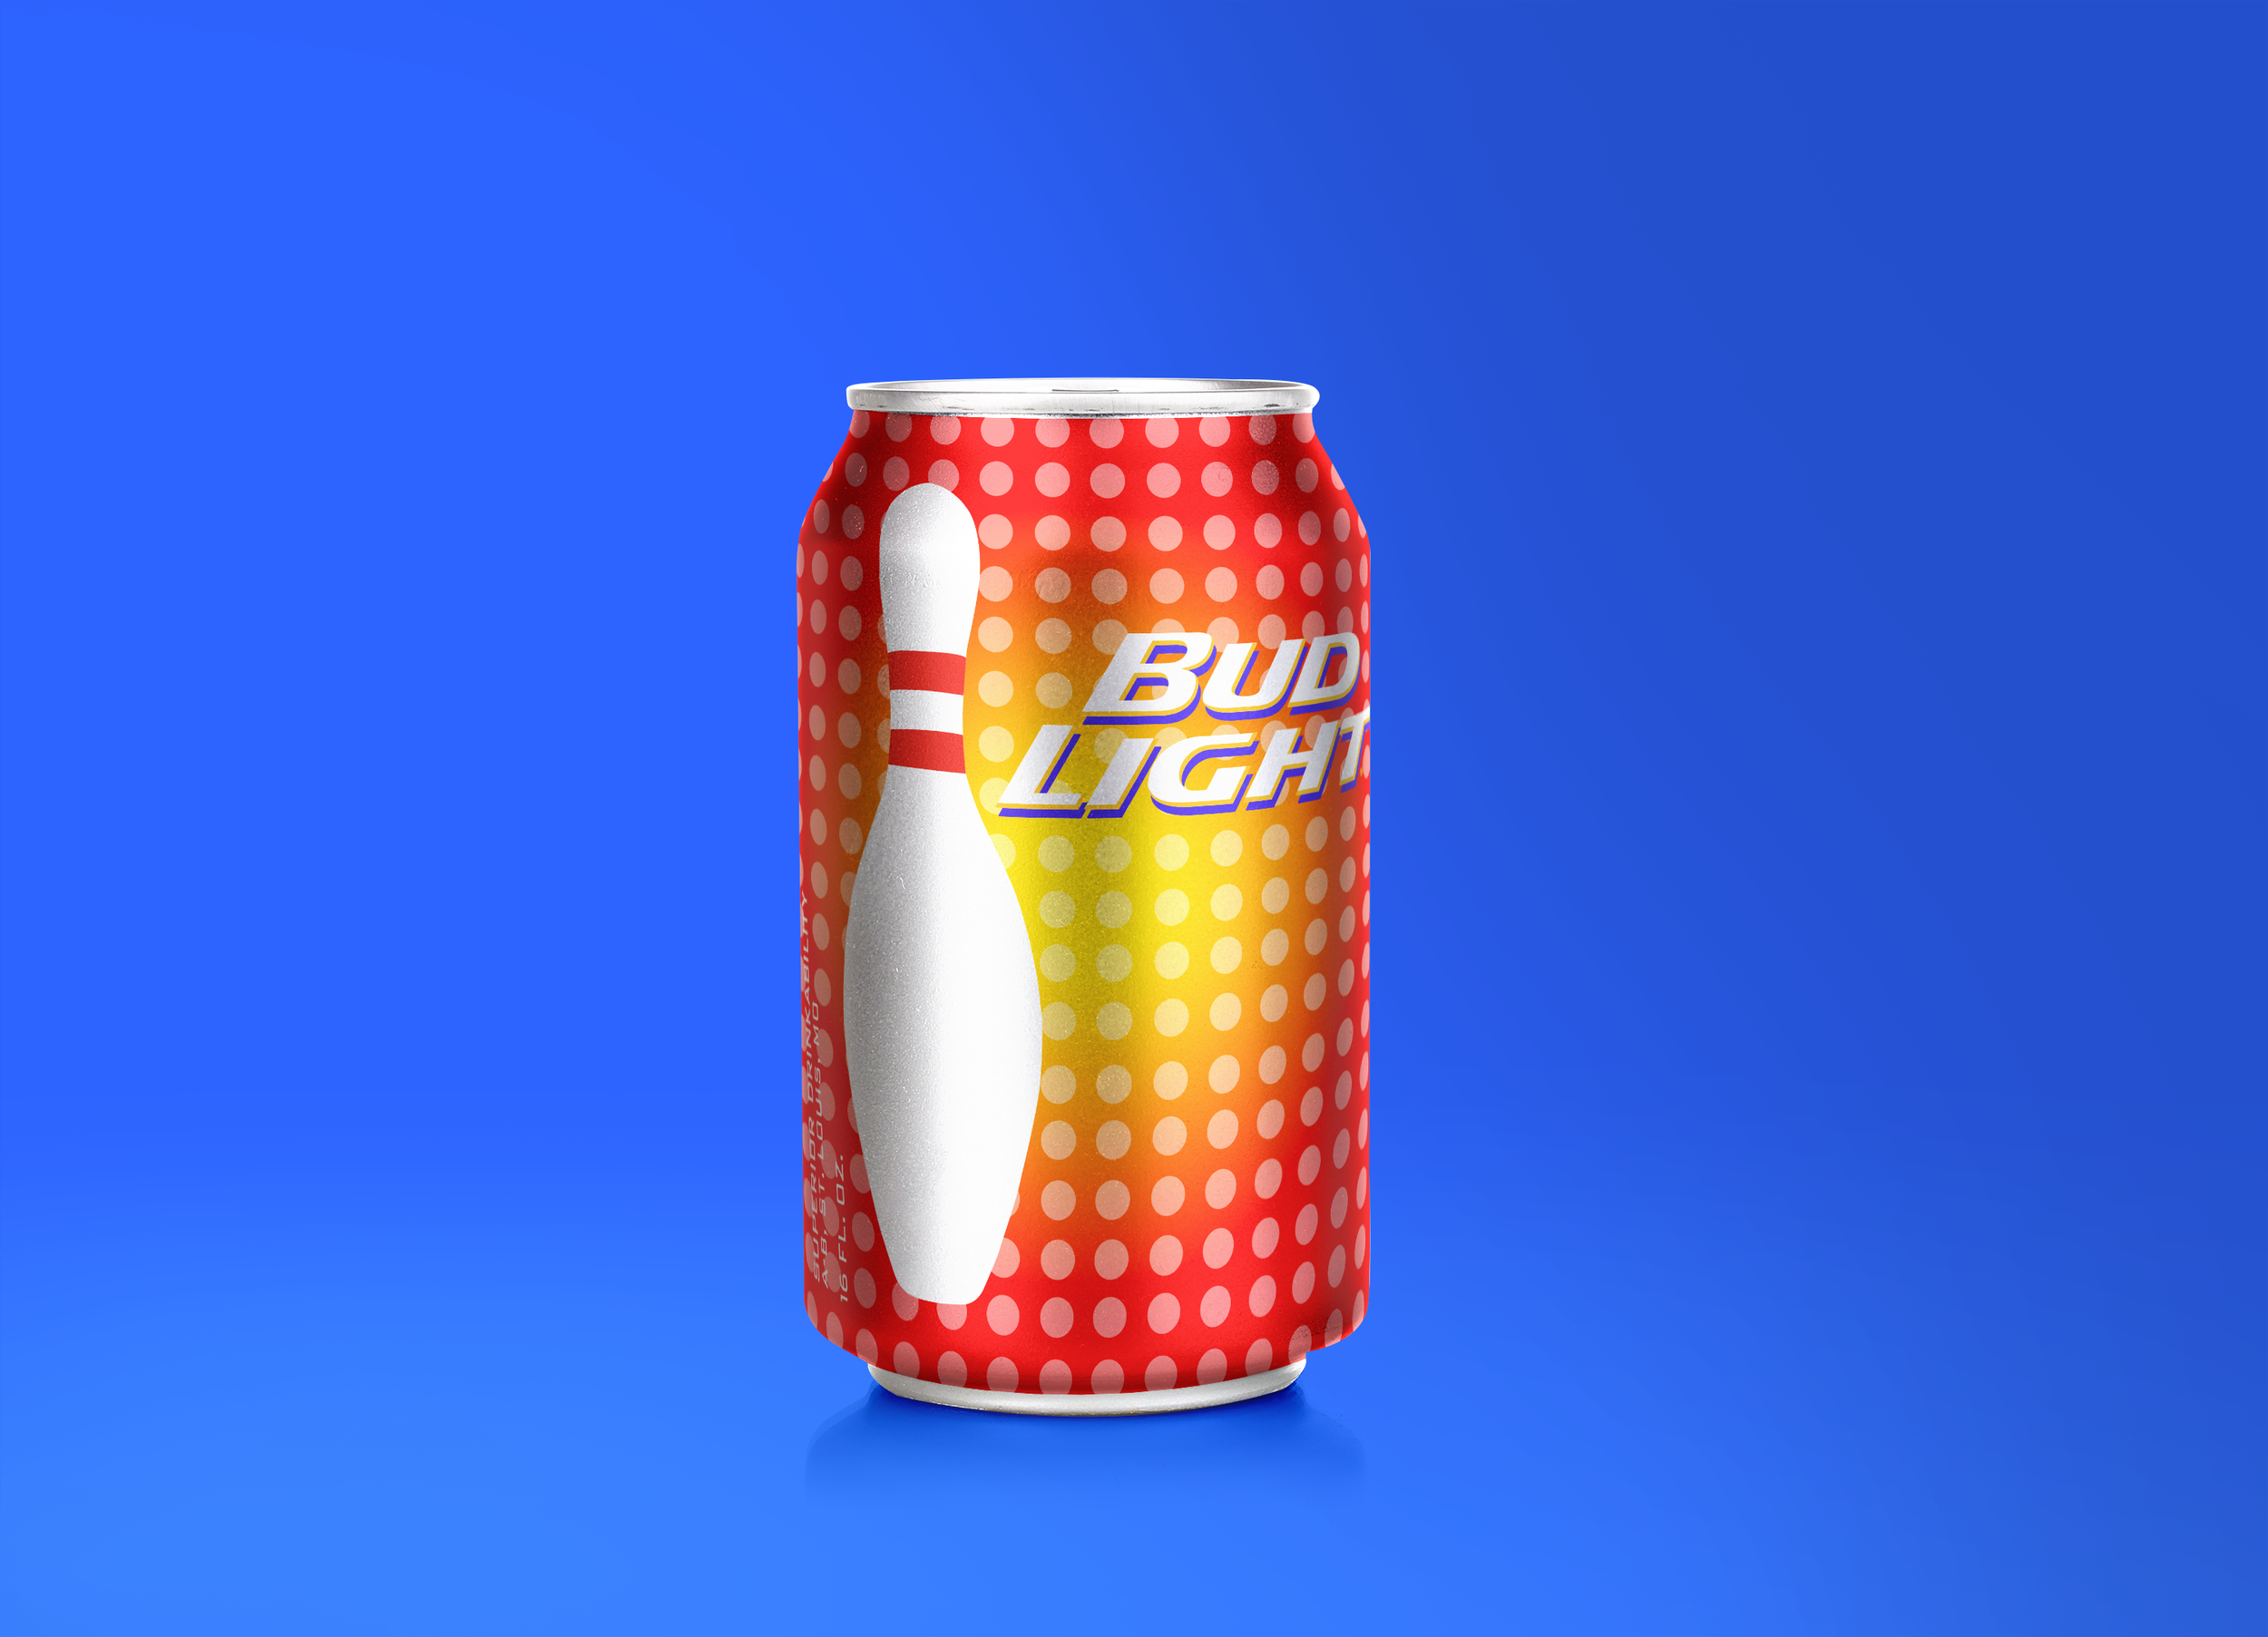 BudLight_CanDesign_BowlingPin_MollieAbleman.png